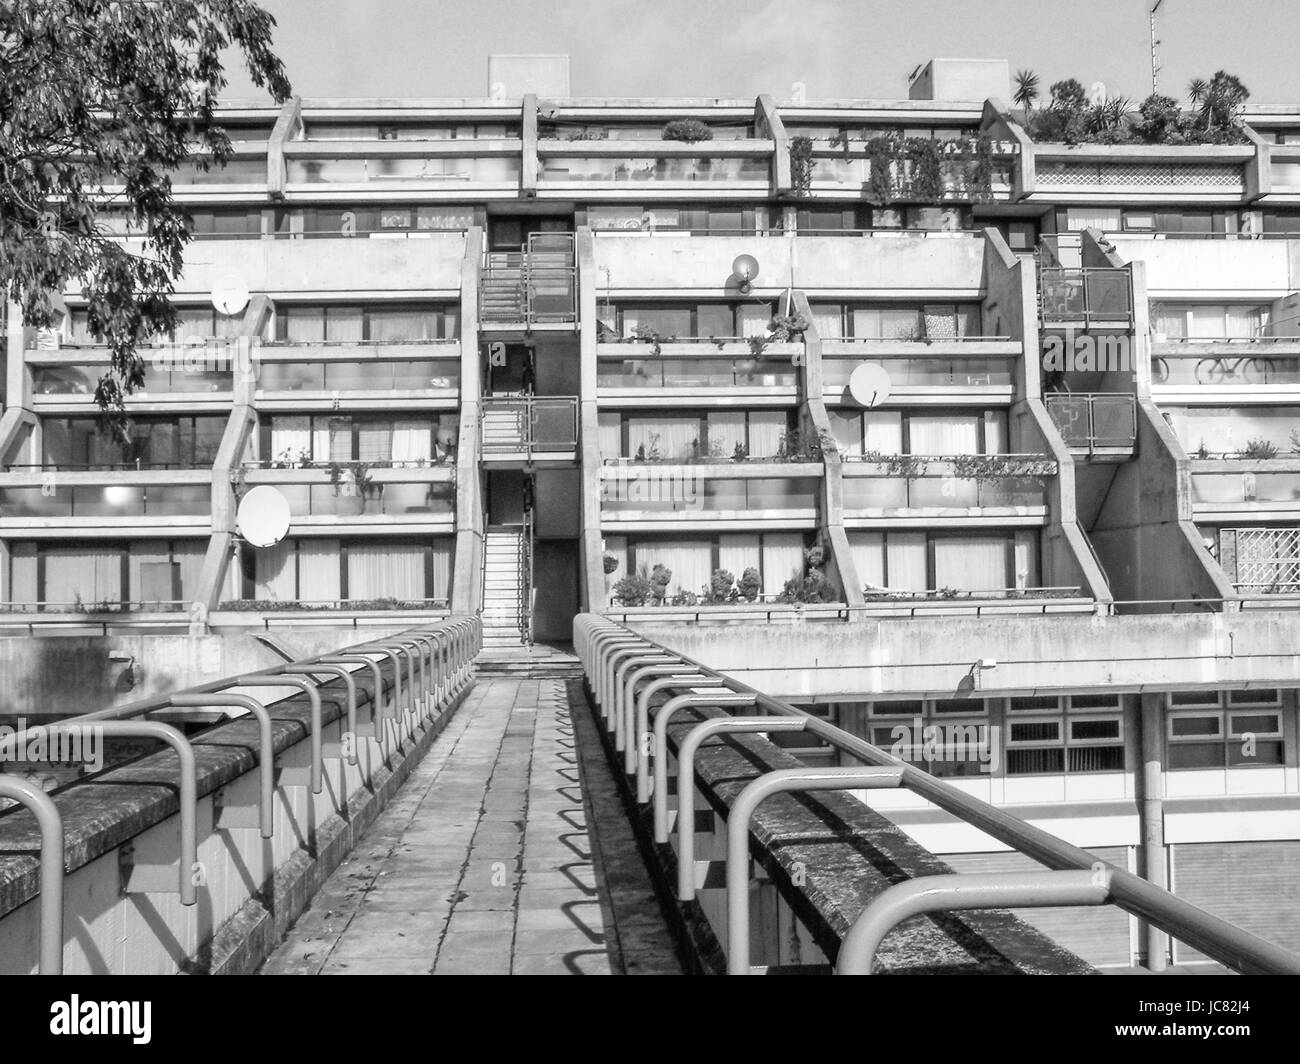 LONDON, ENGLAND, UK - MARCH 07, 2008: The Alexandra Road estate designed in 1968 by Neave Brown applies the terraced Stock Photo